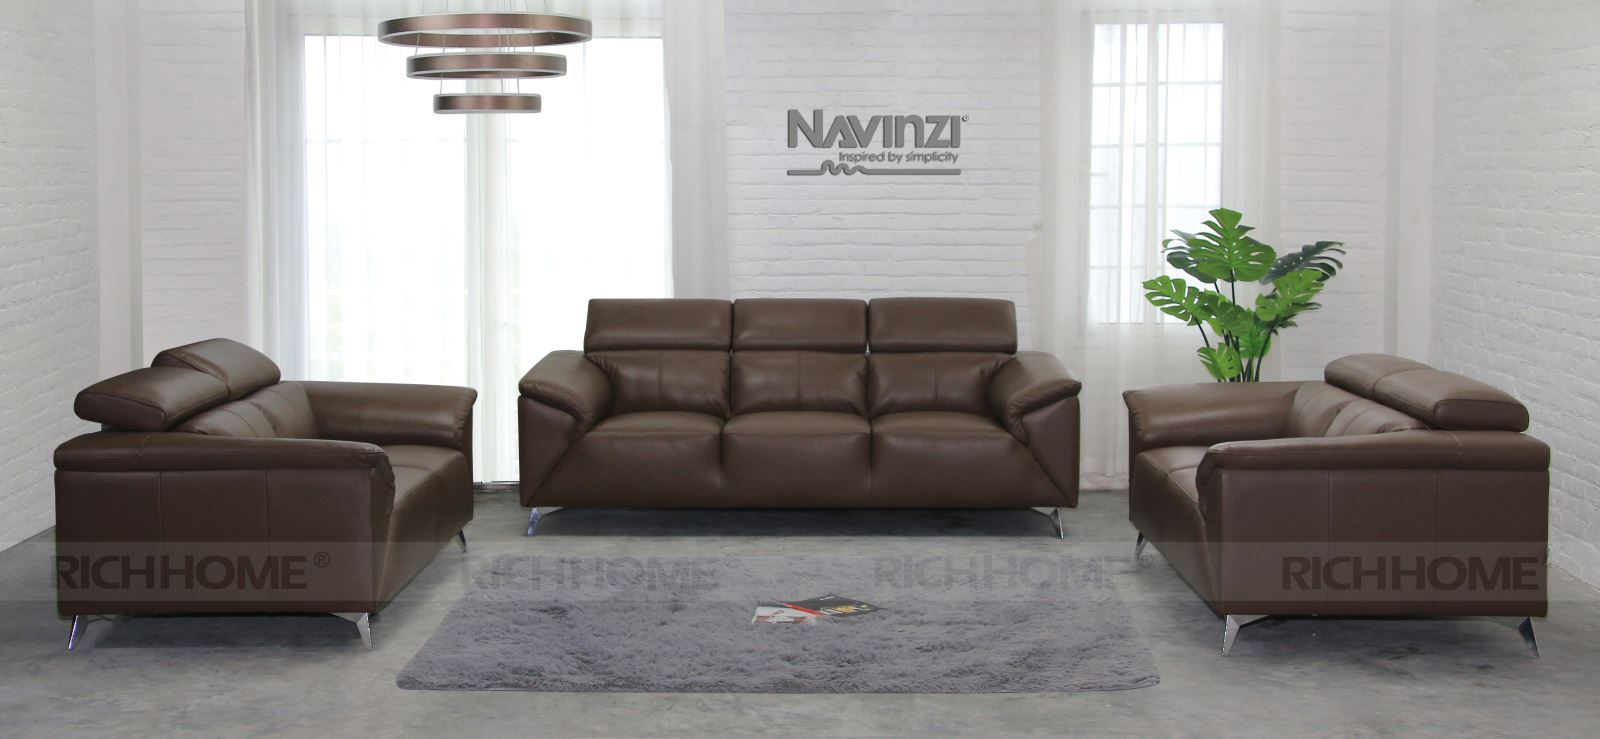 SOFA DA BÒ - NAVINZI MAGIC 2+2+3